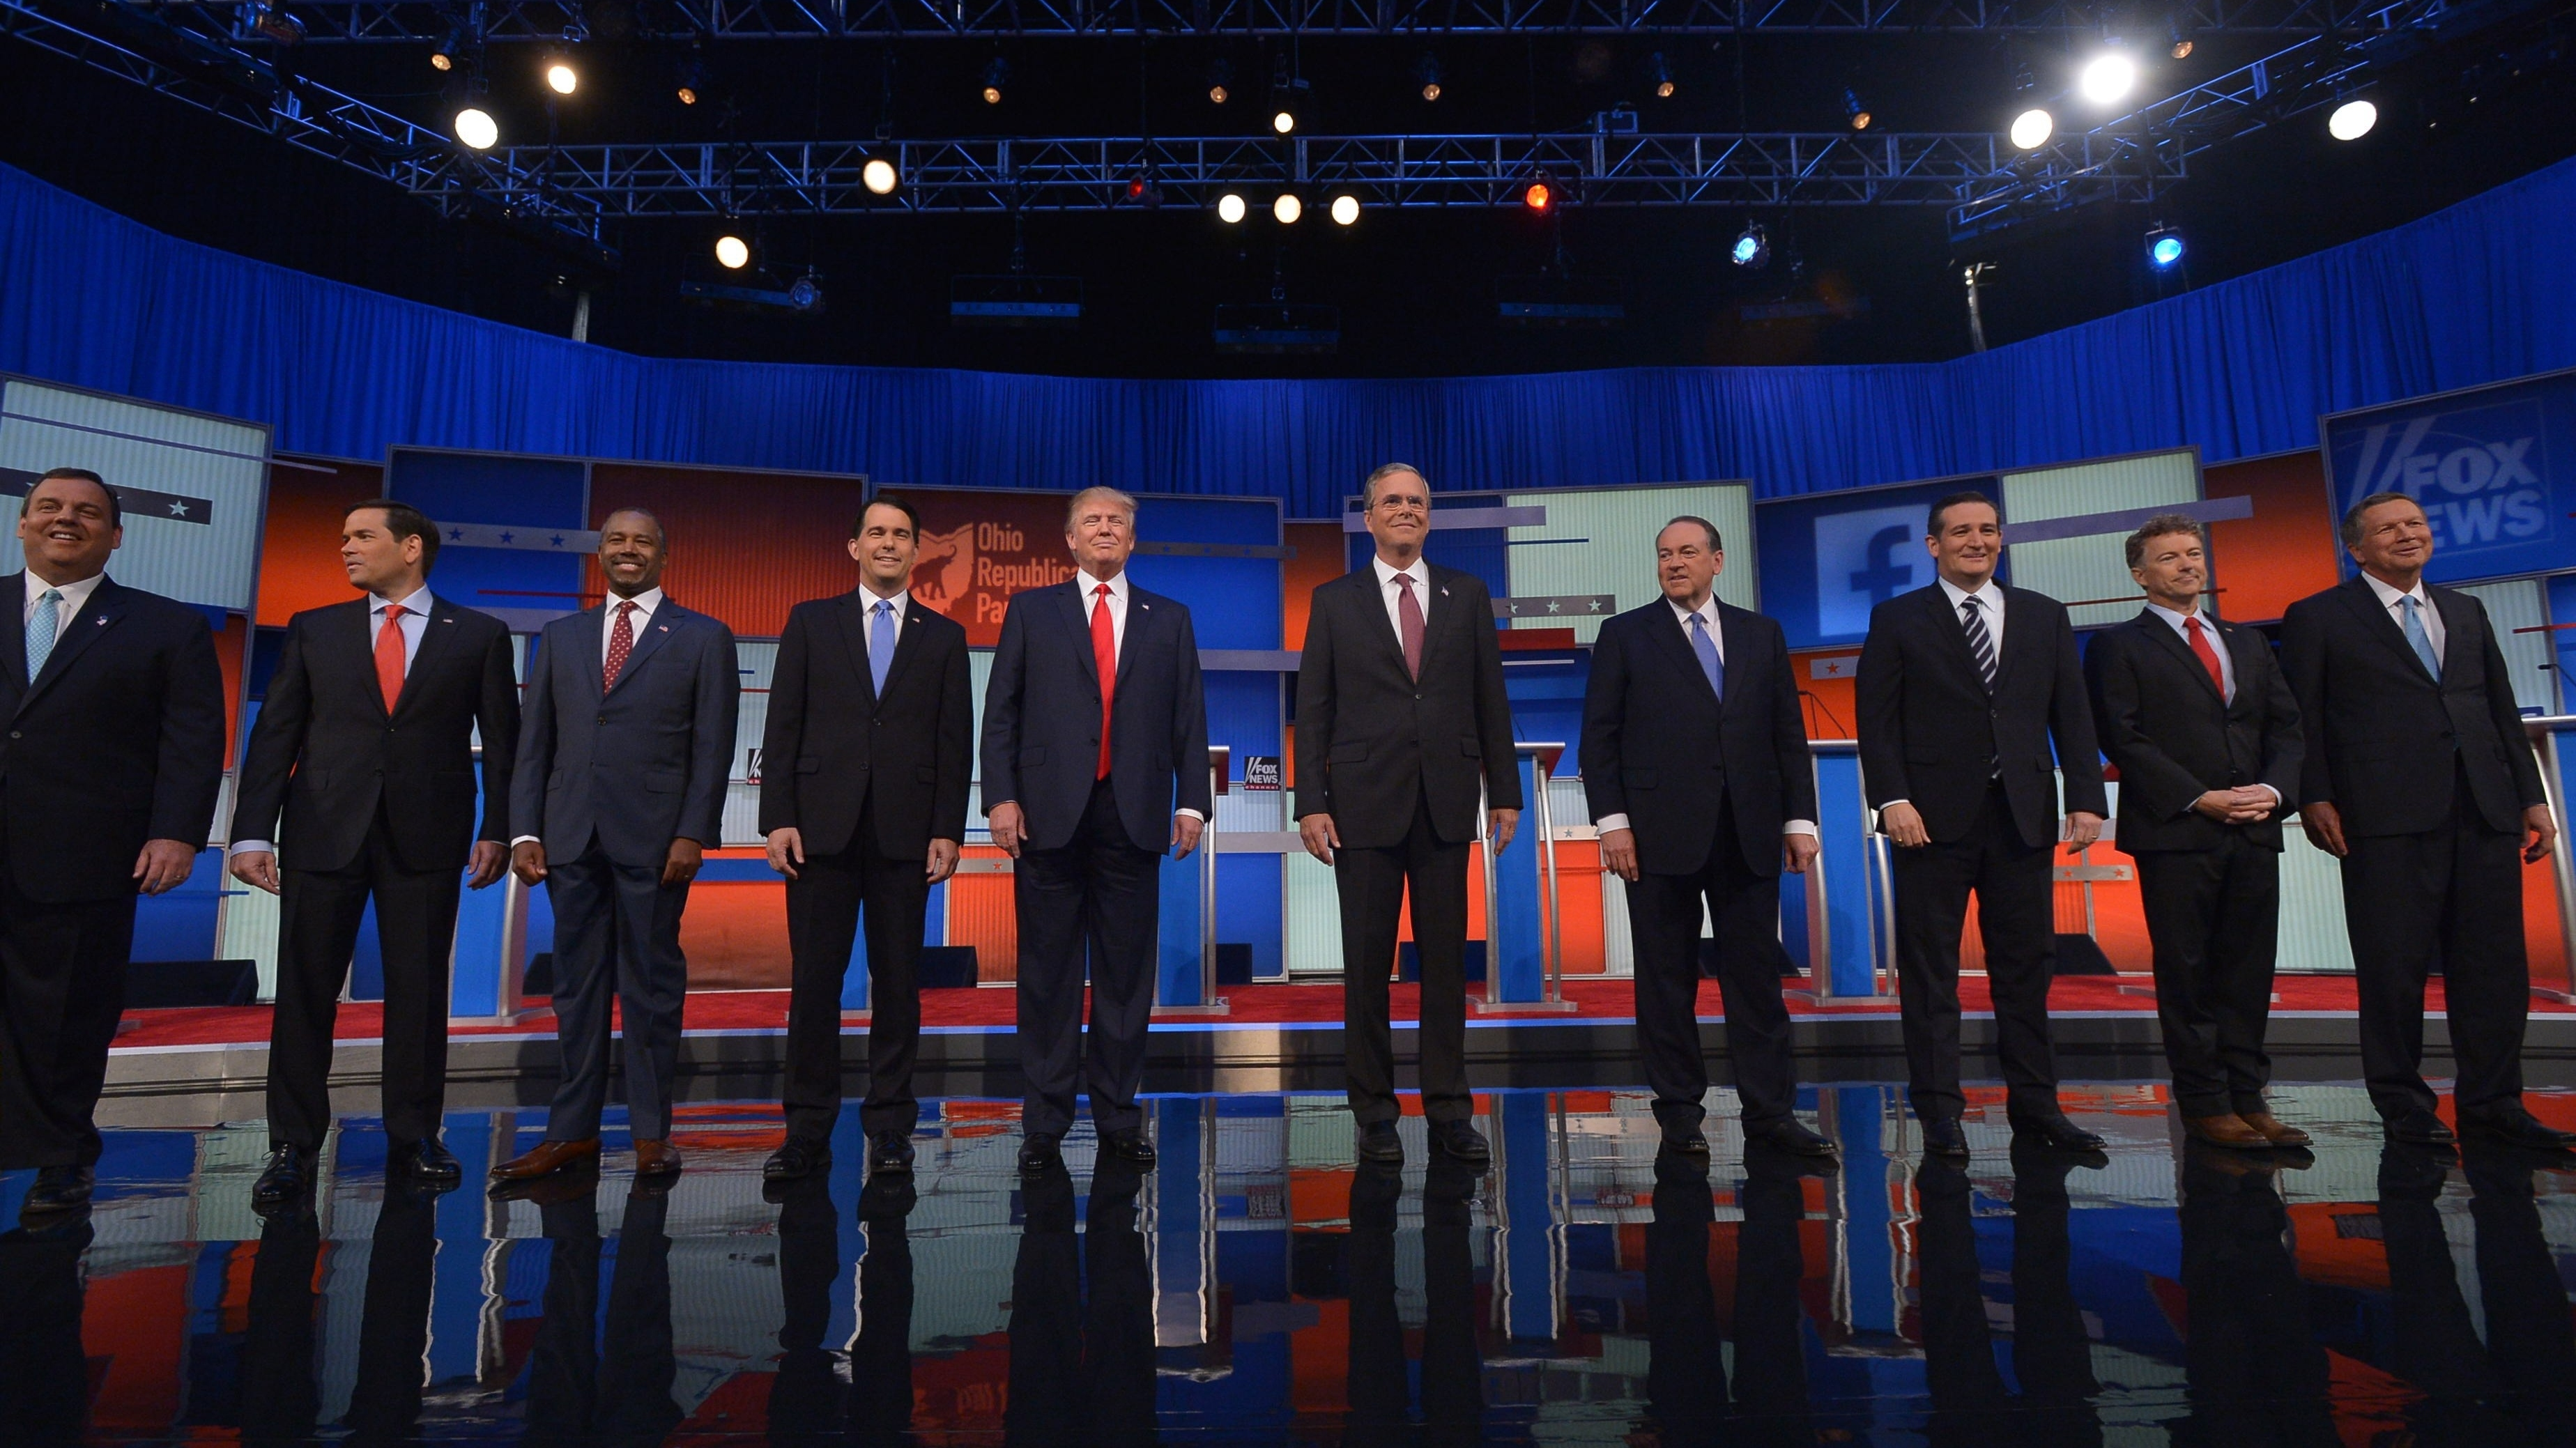 The First GOP Presidential Debate By The Numbers